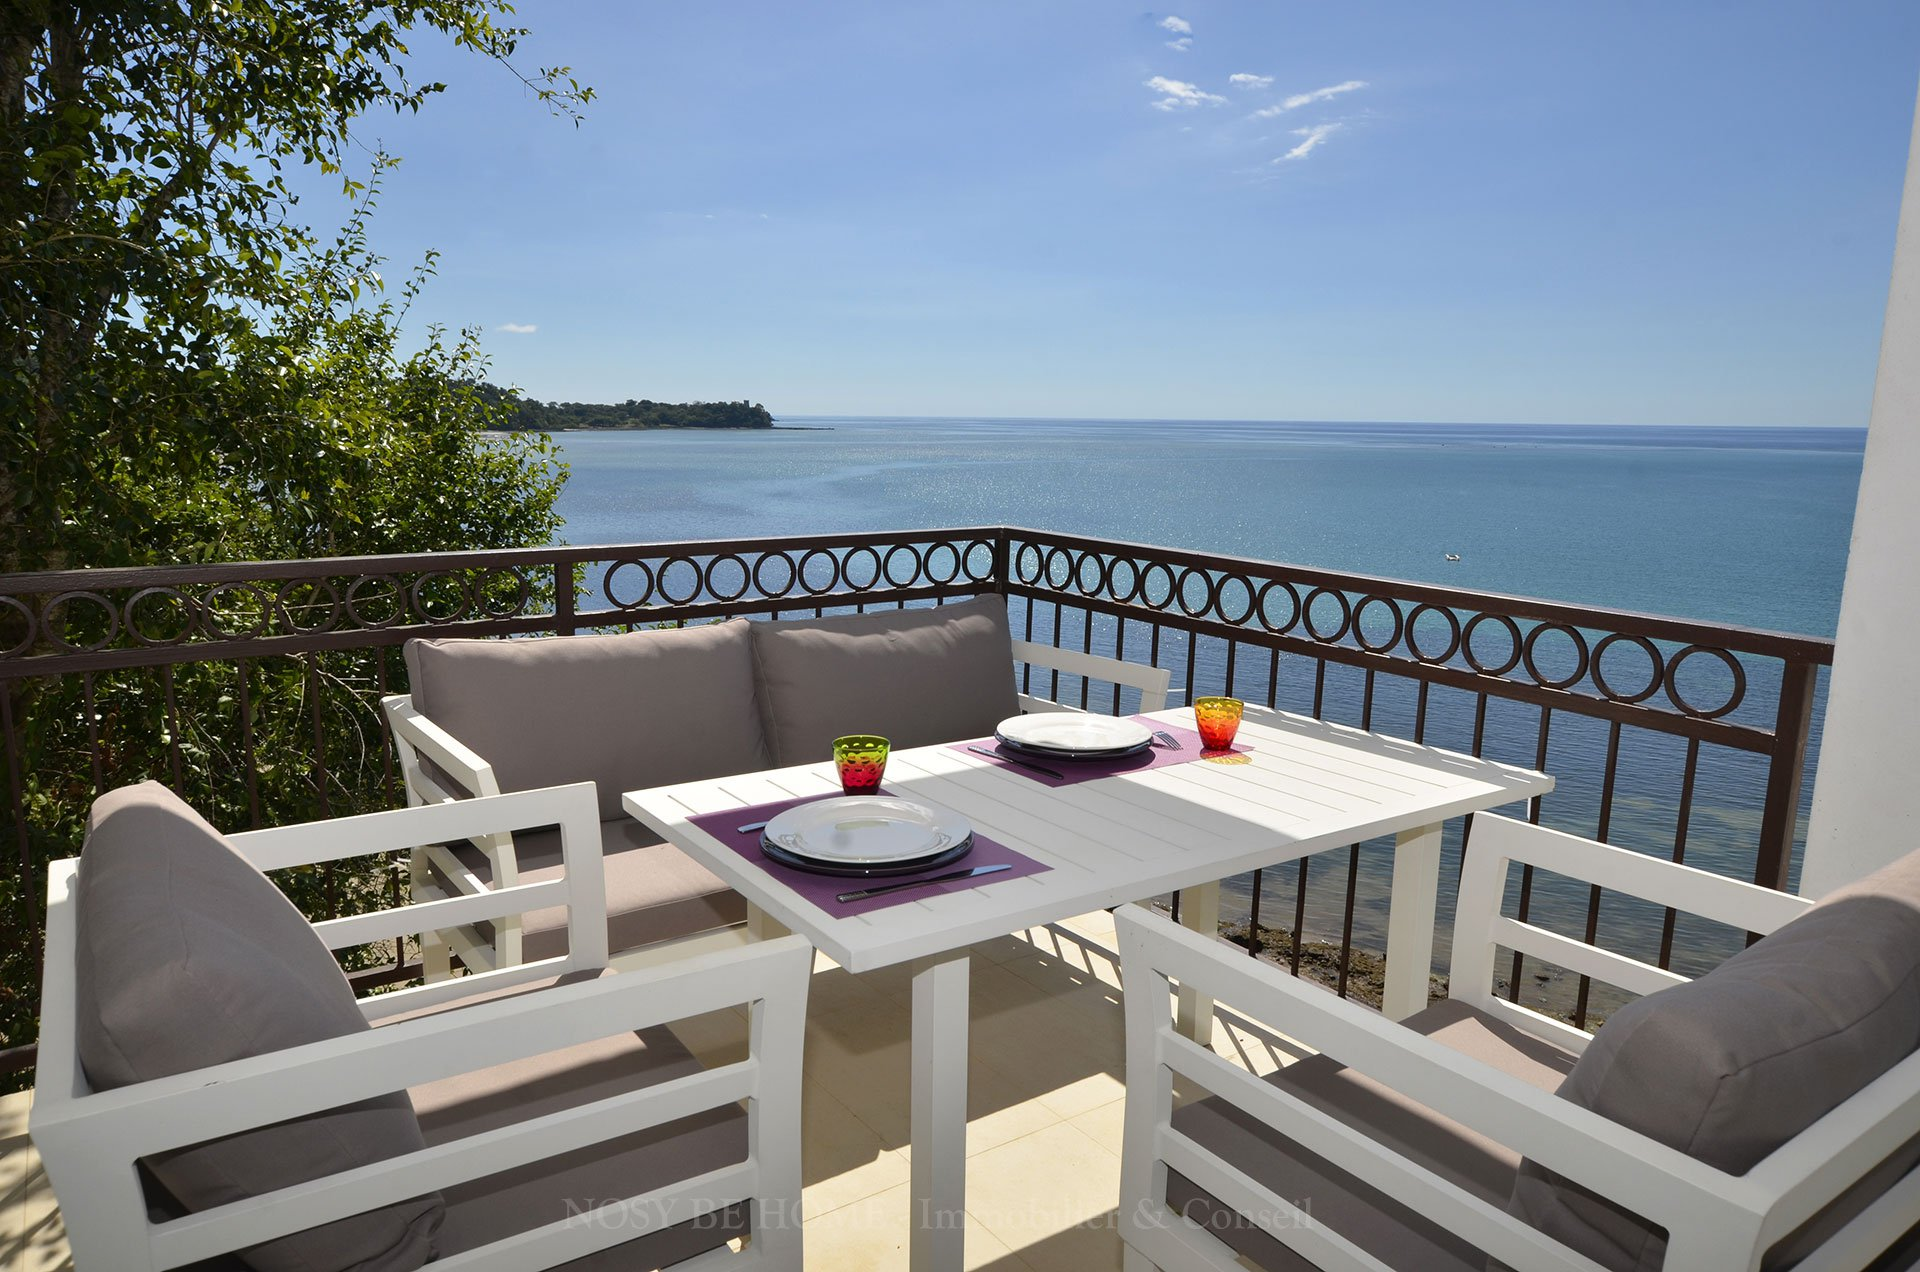 Seasonal rental Apartment - Nosy Be - Madagascar